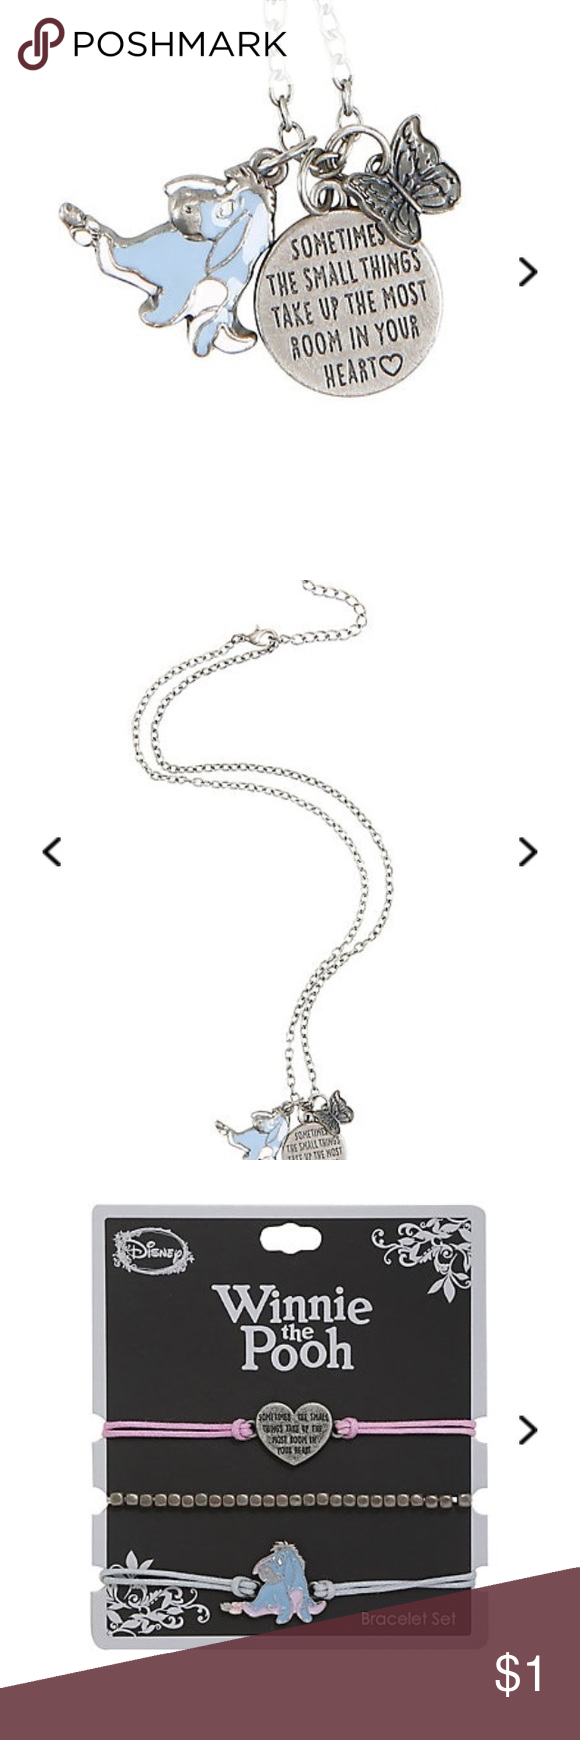 ISO Hot Topic Eeyore Necklace or Bracelets In search of this specific Eeyore necklace from Hot Topic. Sold out on website. Please tag me if you are selling it. Hot Topic Jewelry Necklaces #hottopicclothes ISO Hot Topic Eeyore Necklace or Bracelets In search of this specific Eeyore necklace from Hot Topic. Sold out on website. Please tag me if you are selling it. Hot Topic Jewelry Necklaces #hottopicclothes ISO Hot Topic Eeyore Necklace or Bracelets In search of this specific Eeyore necklace from #hottopicclothes